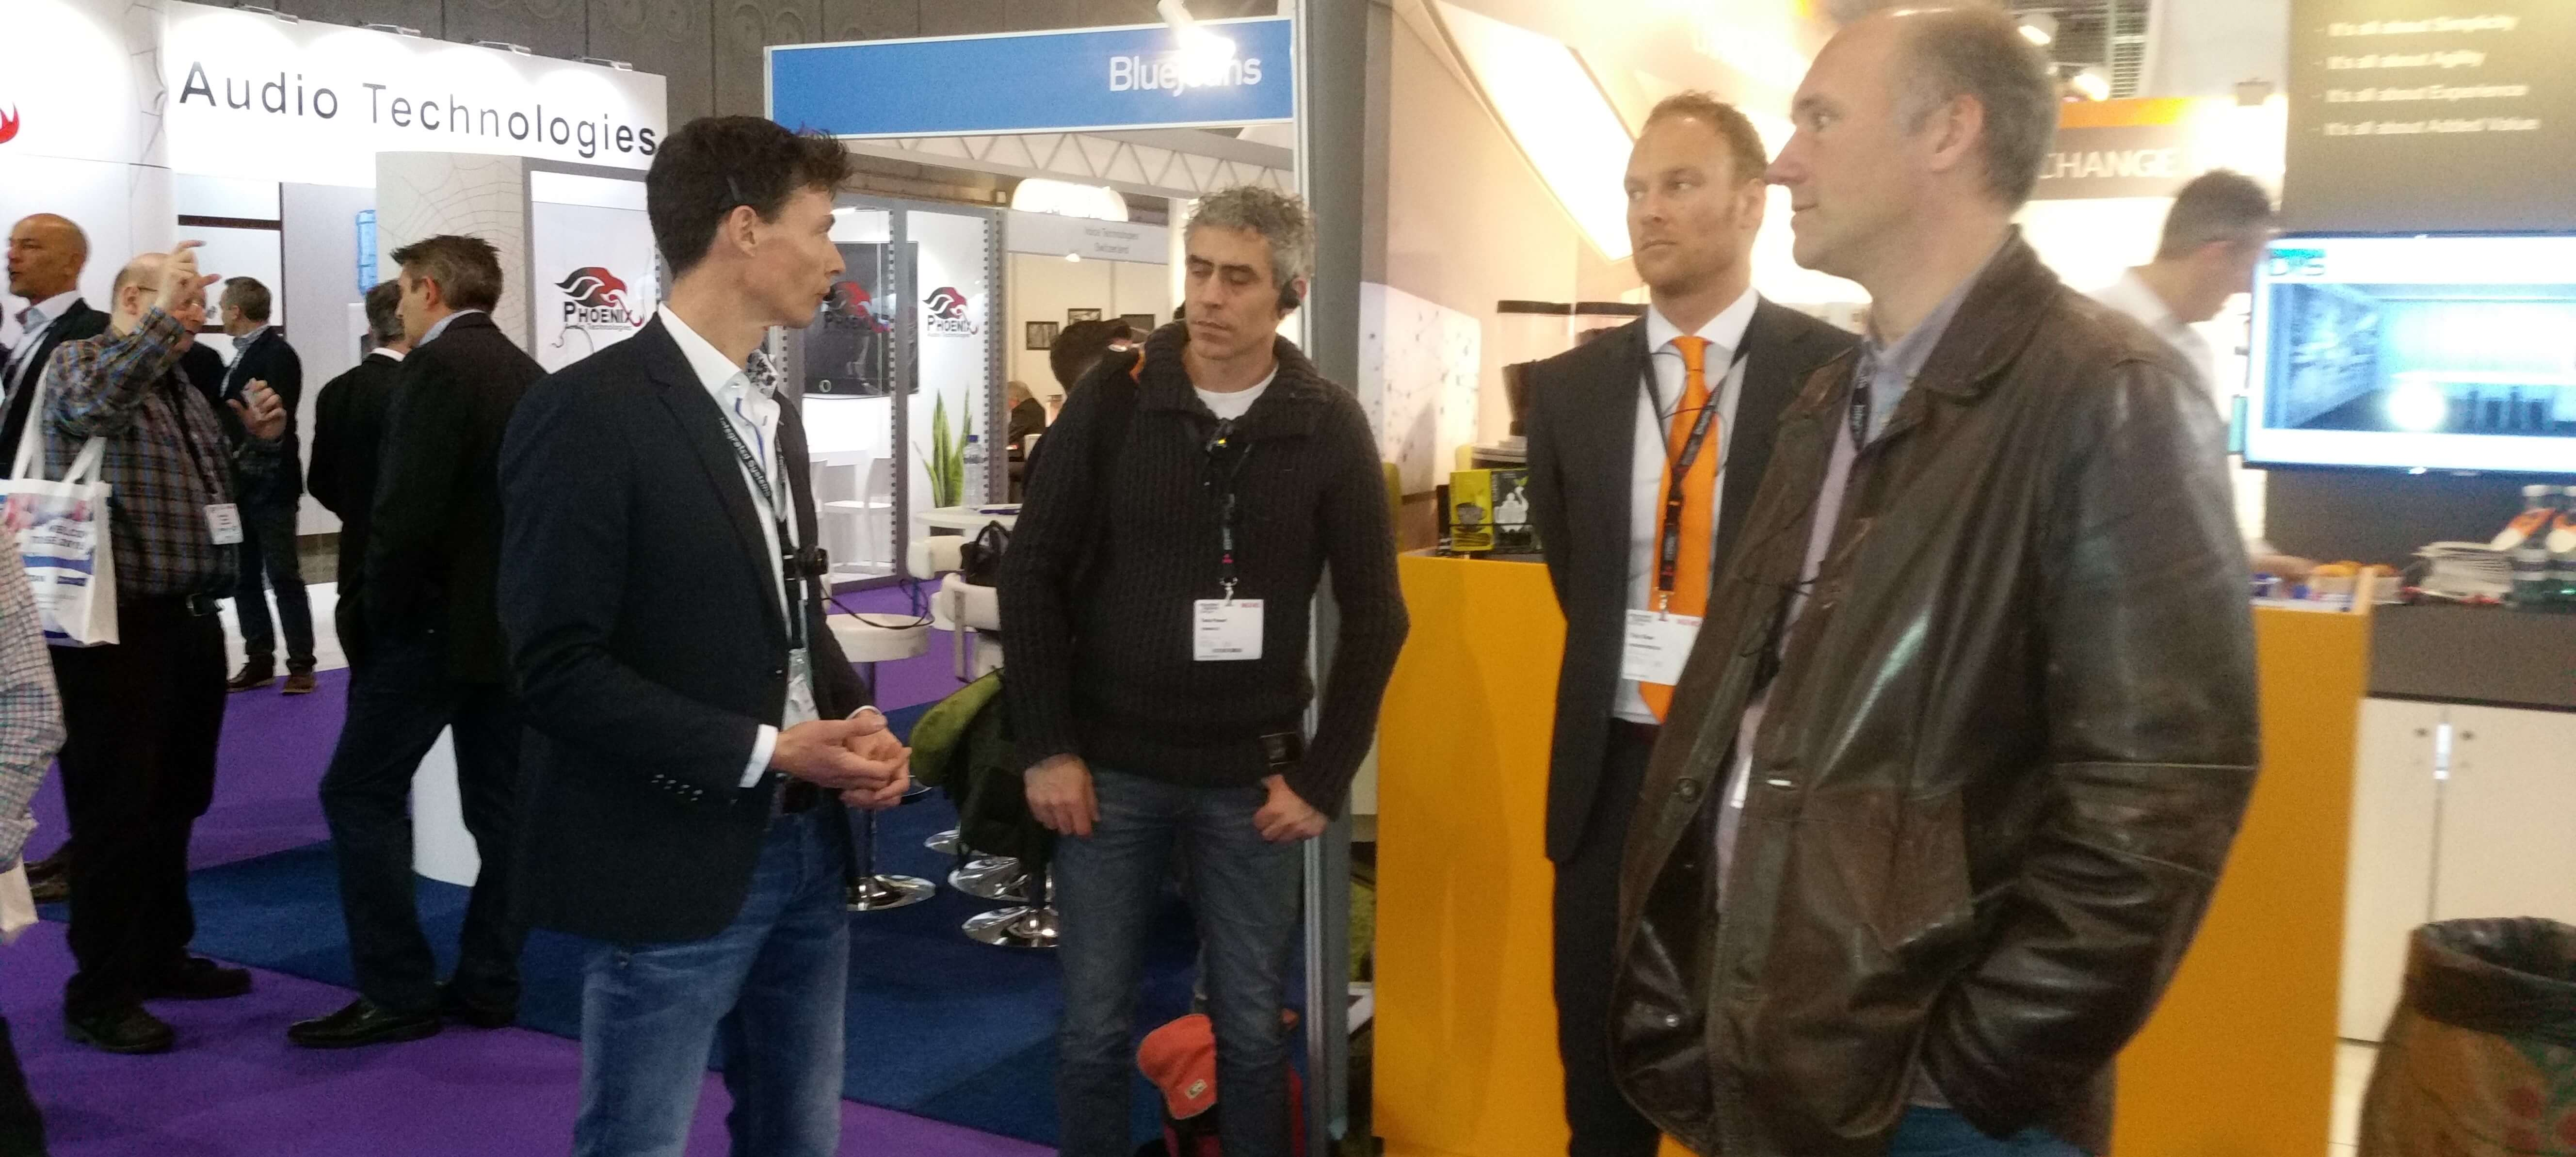 axitour-communicatie-systeem-rondleiding-beurs